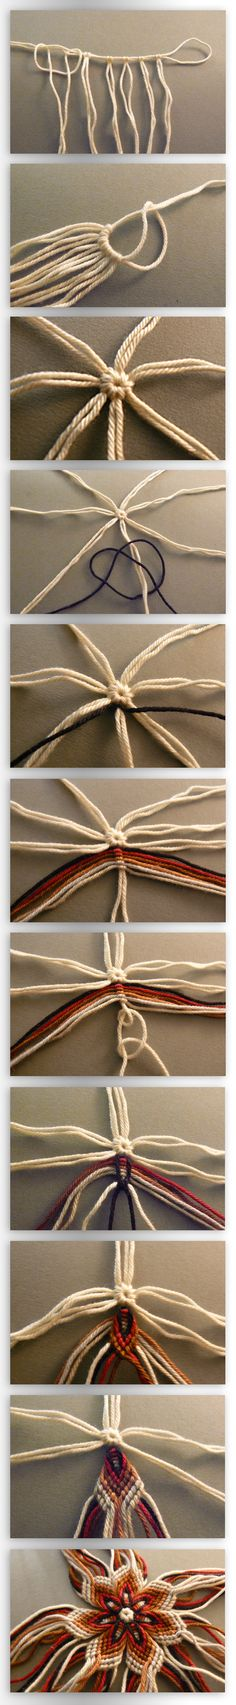 pouch_tutorial_part_i__bottom__by_nimuae-d57hdyi.png (600×4335)